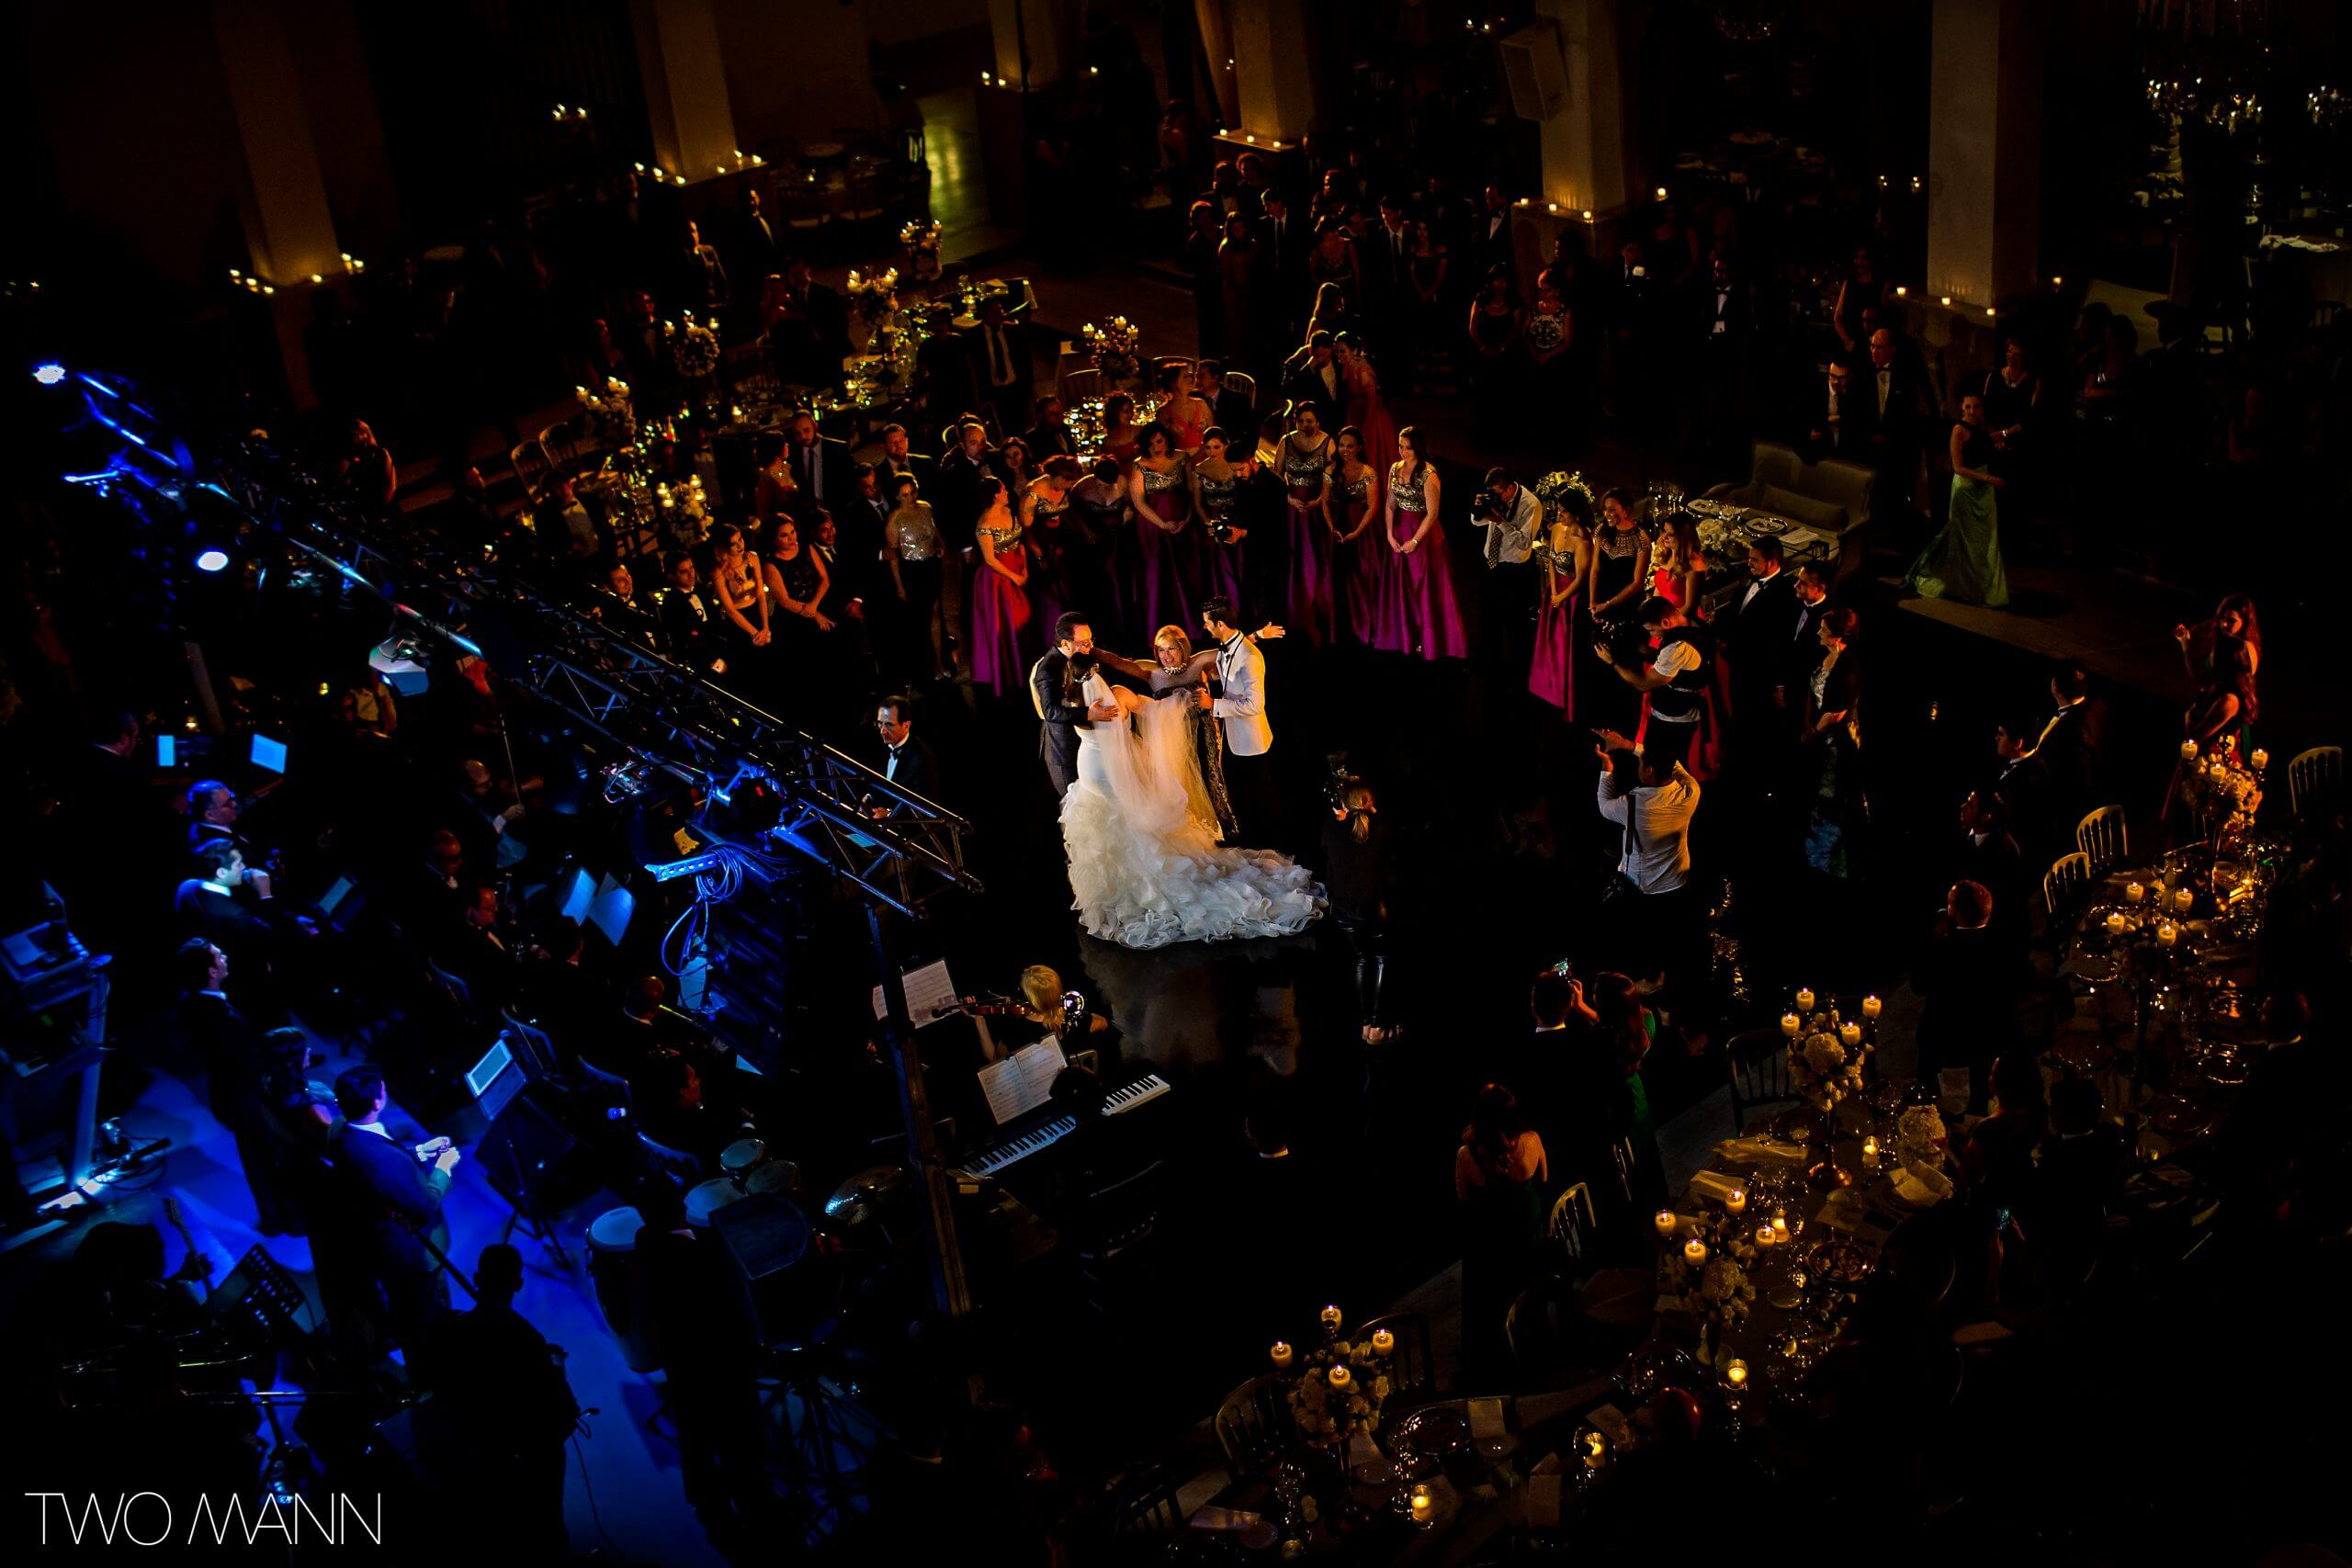 photo of a wedding reception party